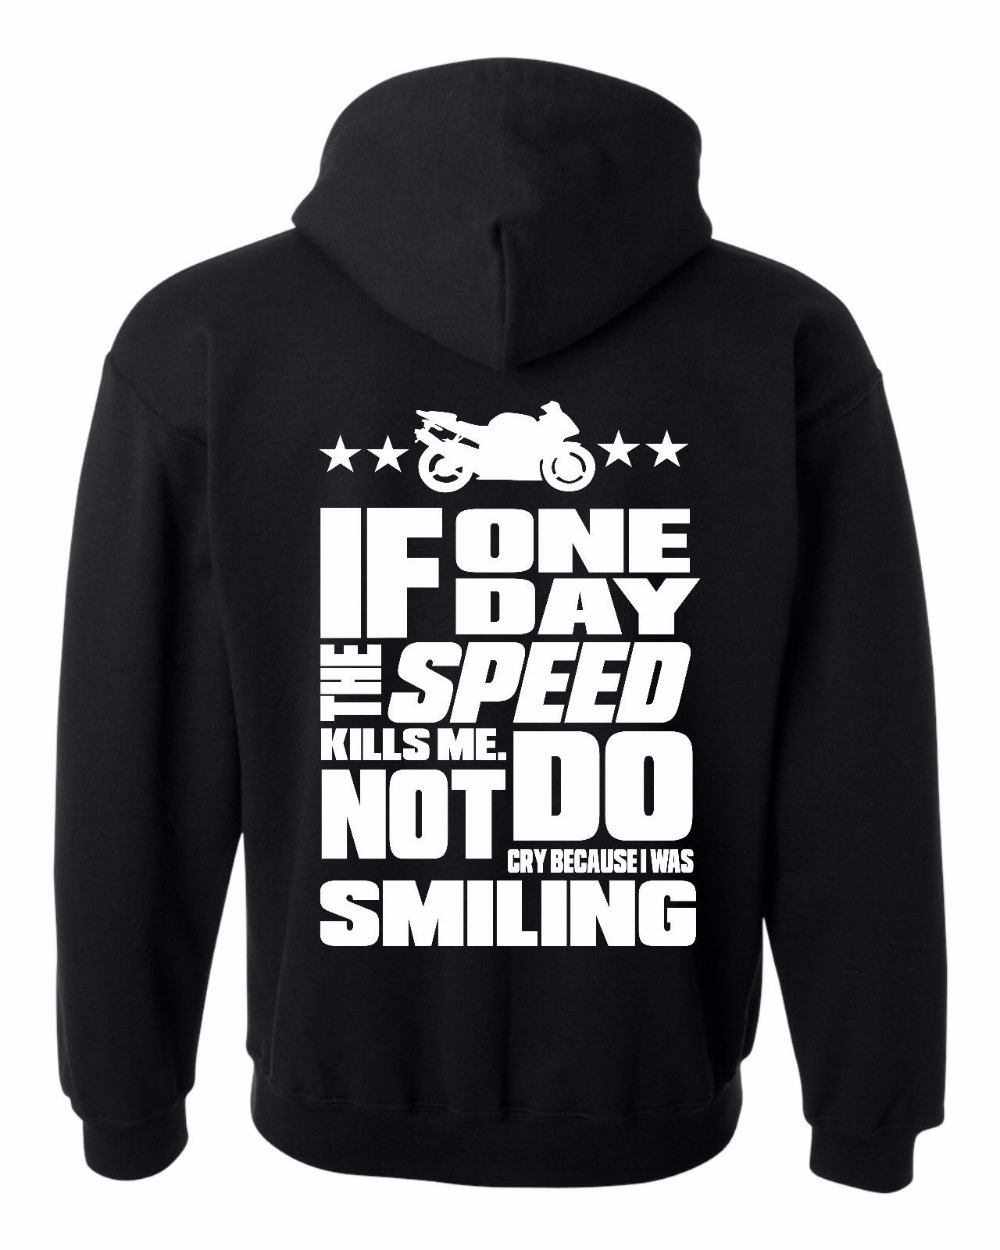 Winter Fashion Men's Hoodies If One Day The Speed Kills Me Bikers Biking Motorcycle Funny Hoodie Cotton Fleece Hoodie Sweatshirt